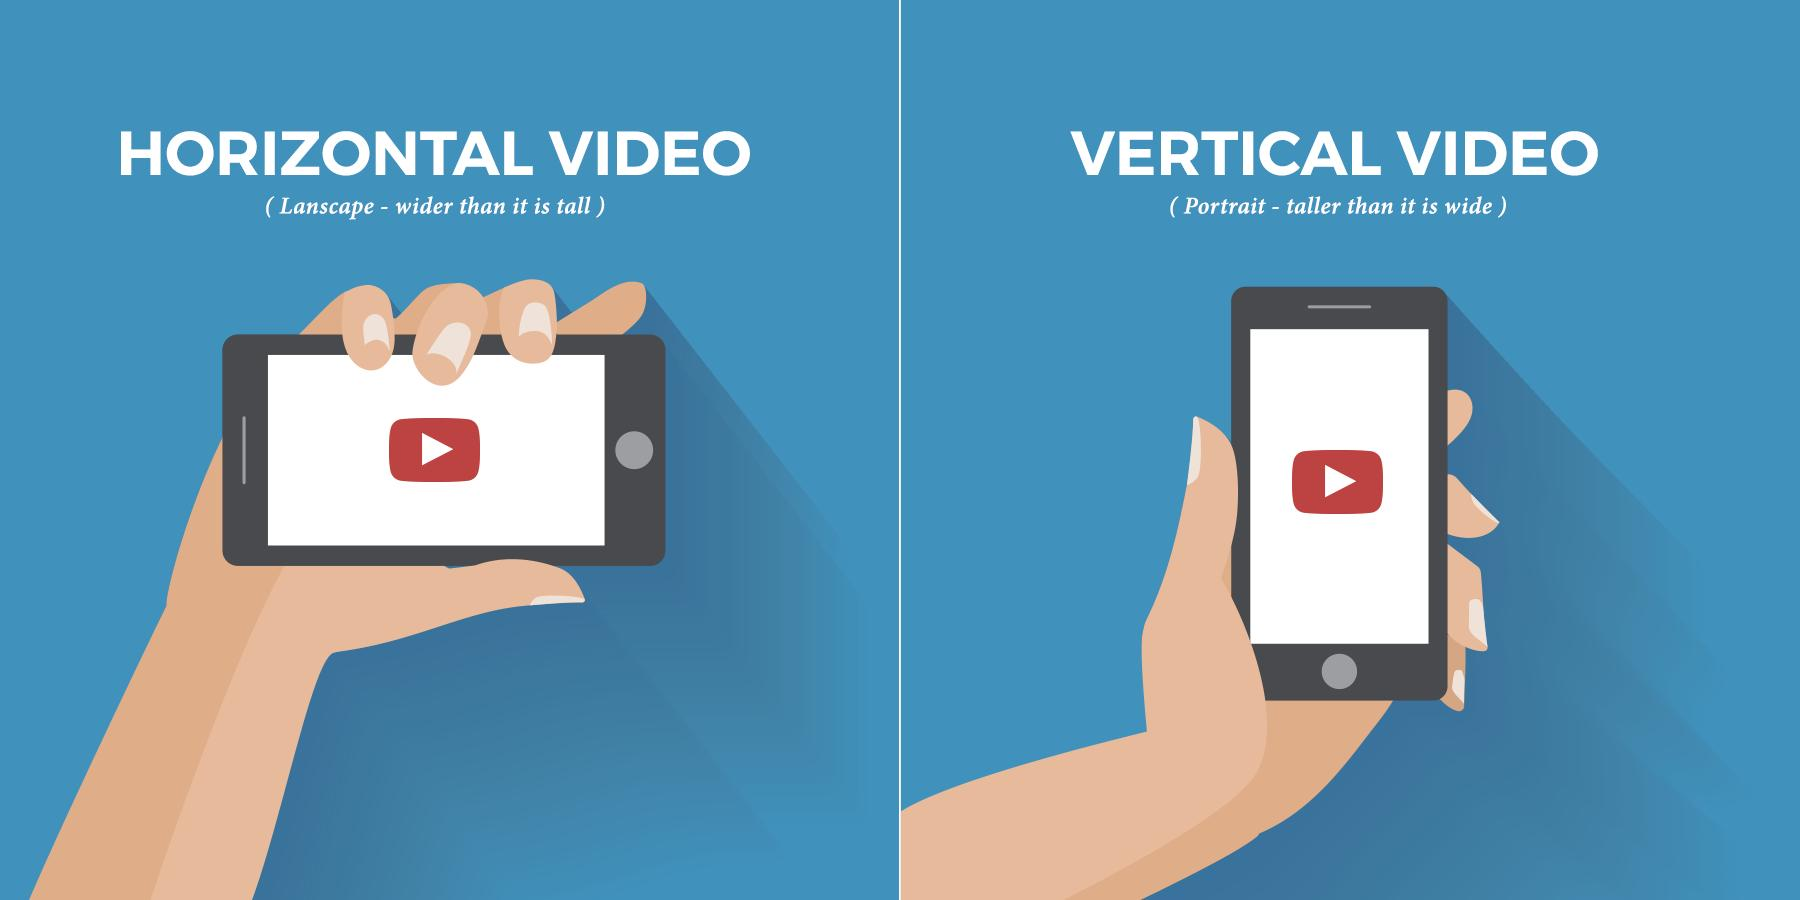 Horizontal vs. Vertical video came up again today for me. Here's the thing, if there's a chance your audience will watch your video on a wide screen TV or computer, record horizontally. If your audience is on Snapchat or Instagram (IGTV) vertical is fine. #justsayin #powerofvideo https://t.co/EZEaG6wSkQ